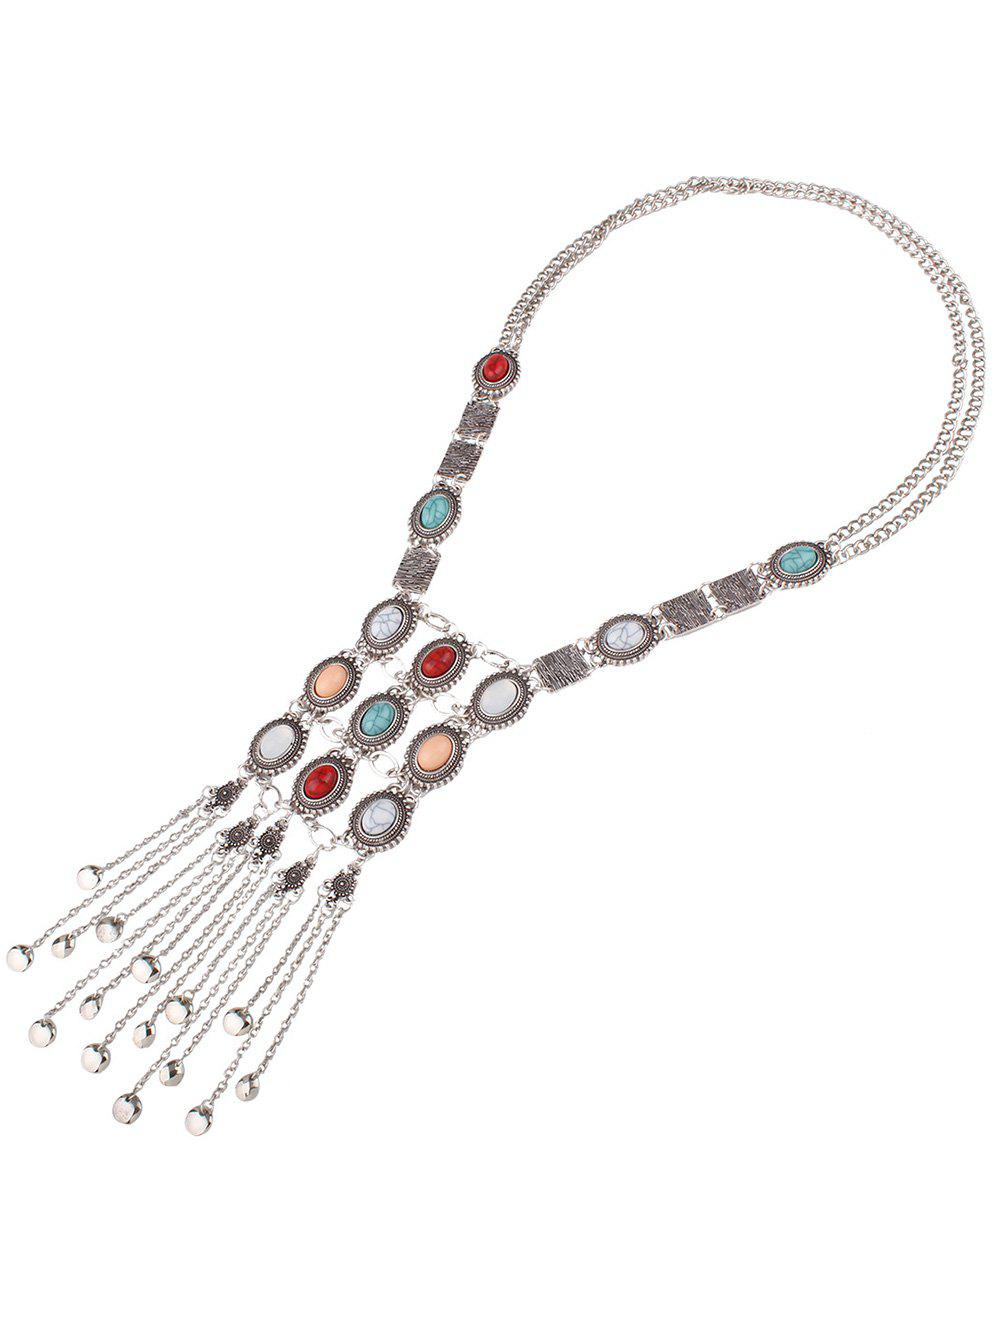 Vintage Carved Alloy Natural Stone Oval Multilayered Fringe Sweater Chain For Women